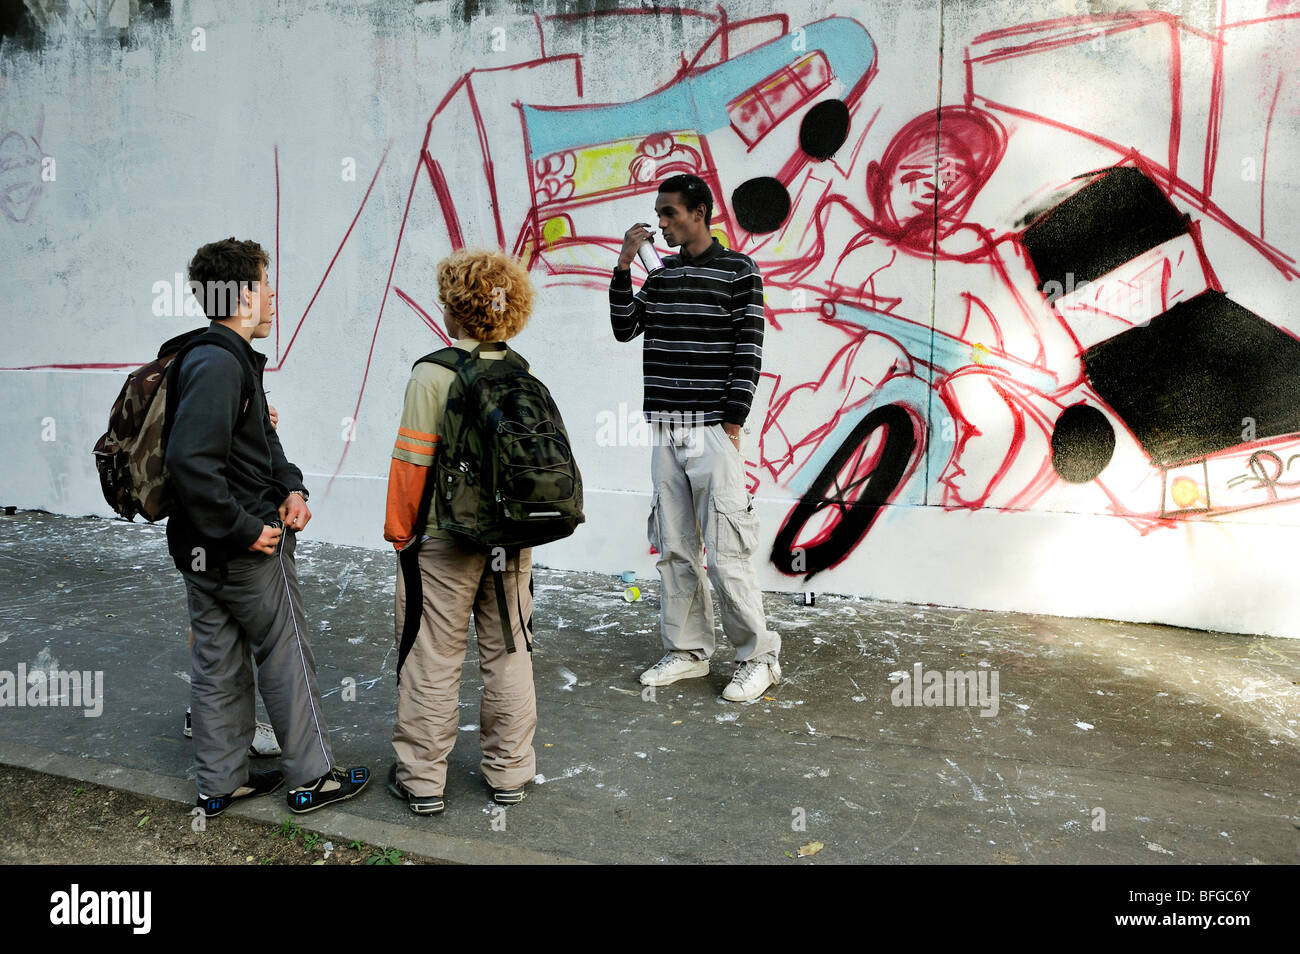 Paris, France, Street Scene, Young Male French Teen Street Graffer, Painting Wall, Talking to Younger Teens on Street, - Stock Image